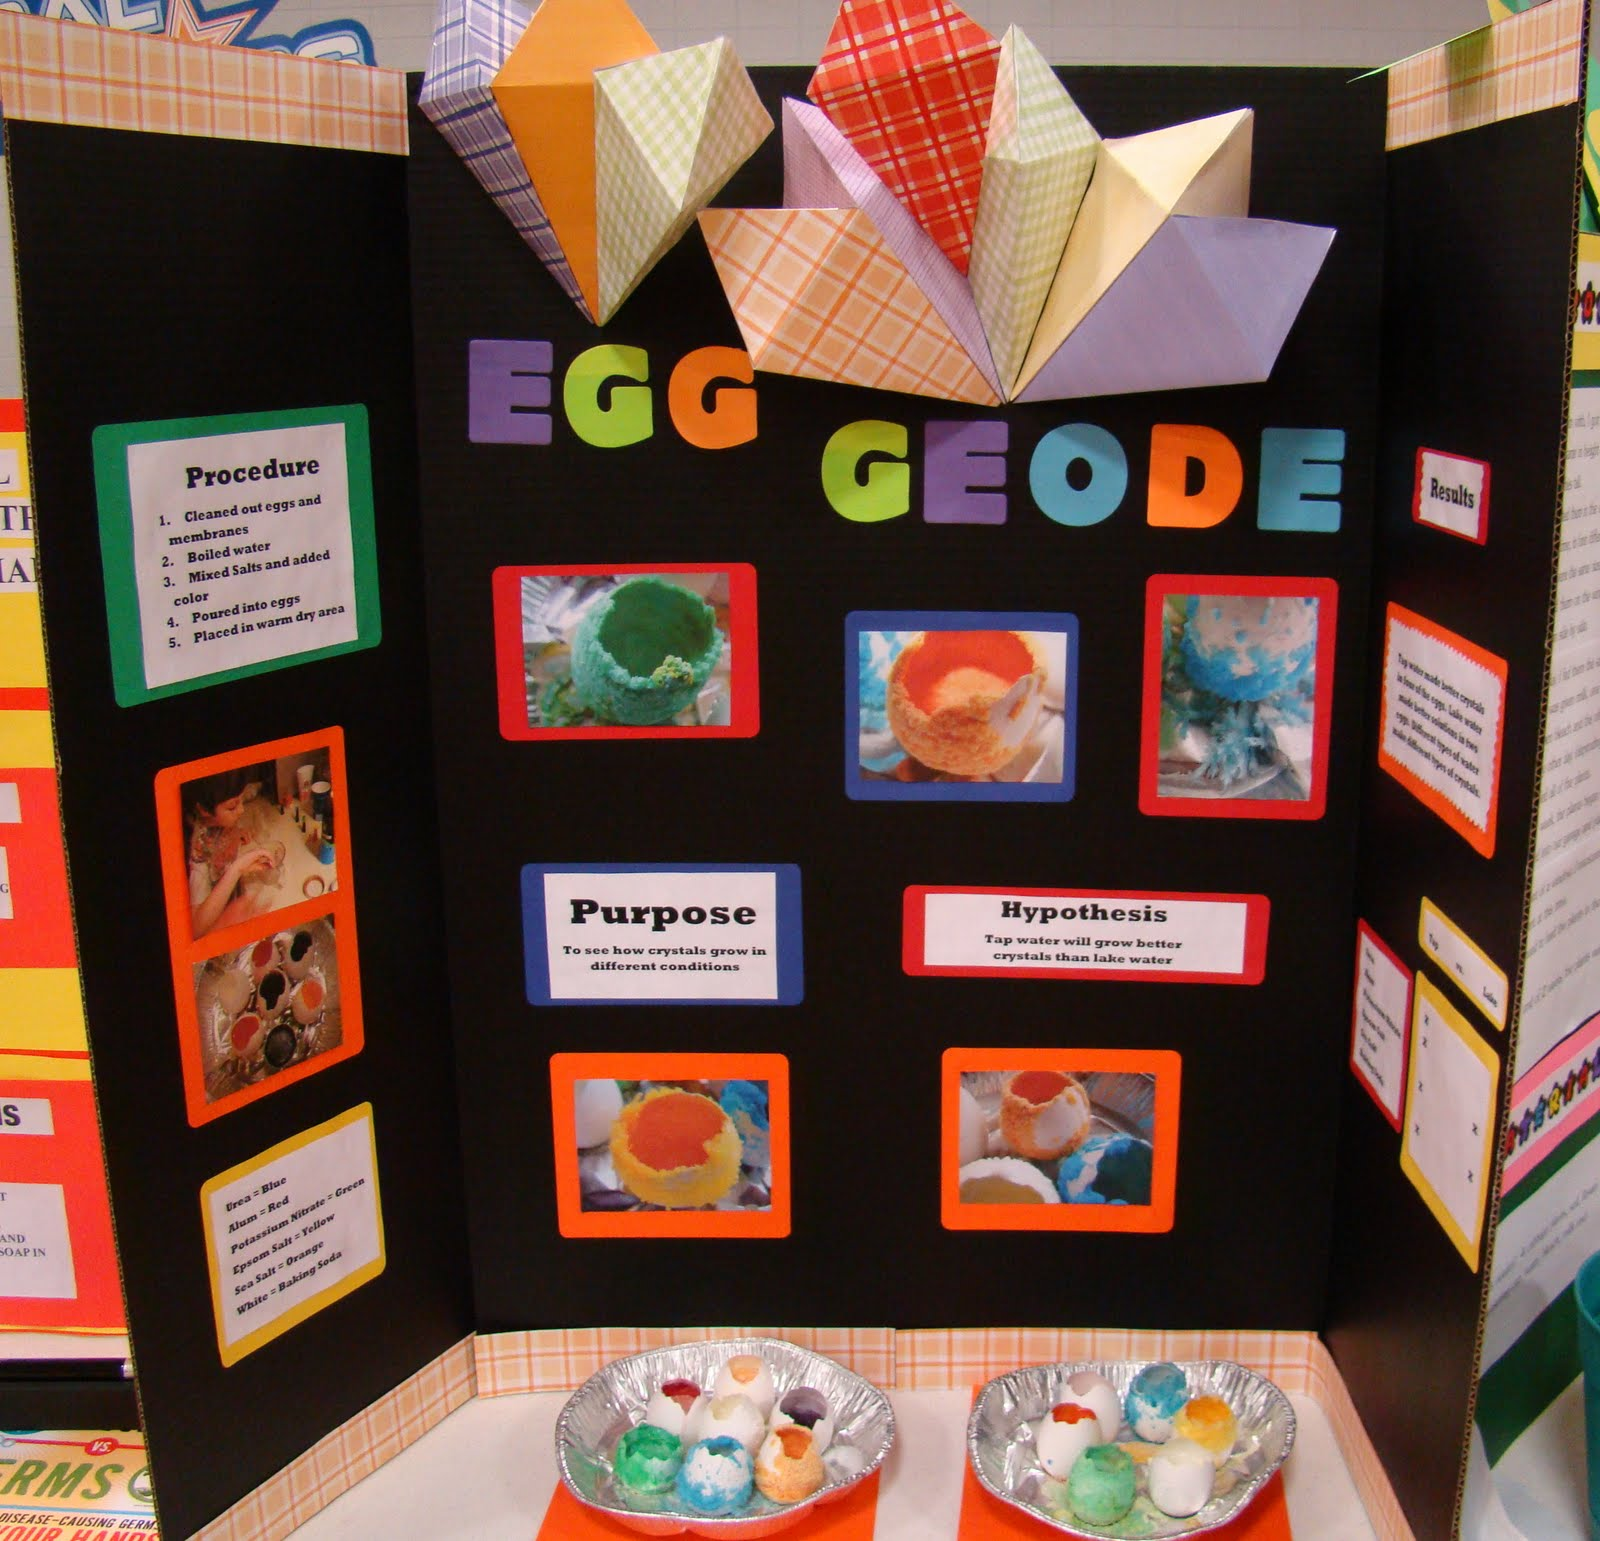 Egg Geodes Science Fair Project